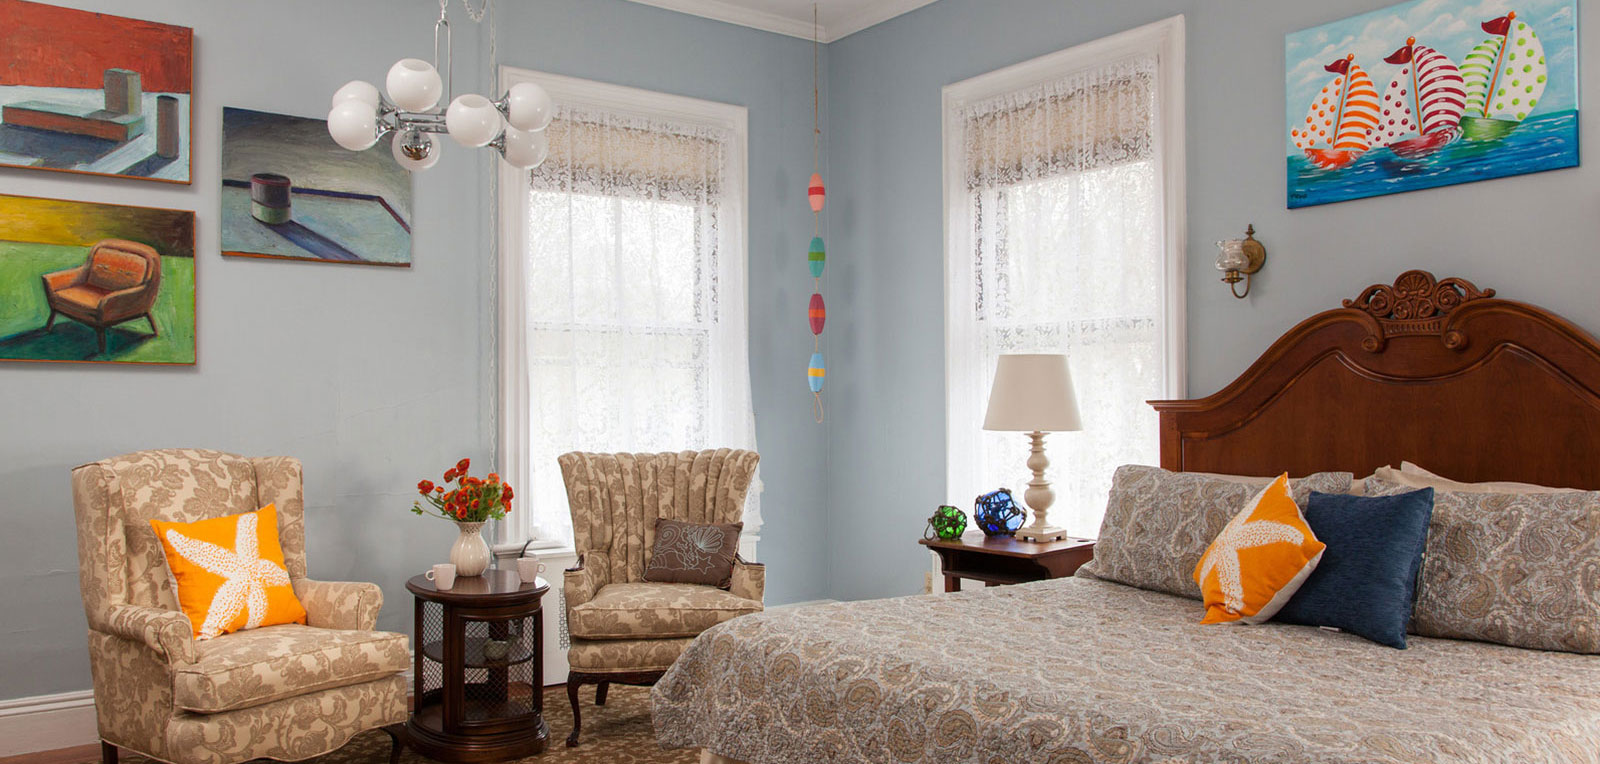 King Private Bath Bedroom Room with Paintings | ADMIRAL SIMS B&B, Newport Rhode Island